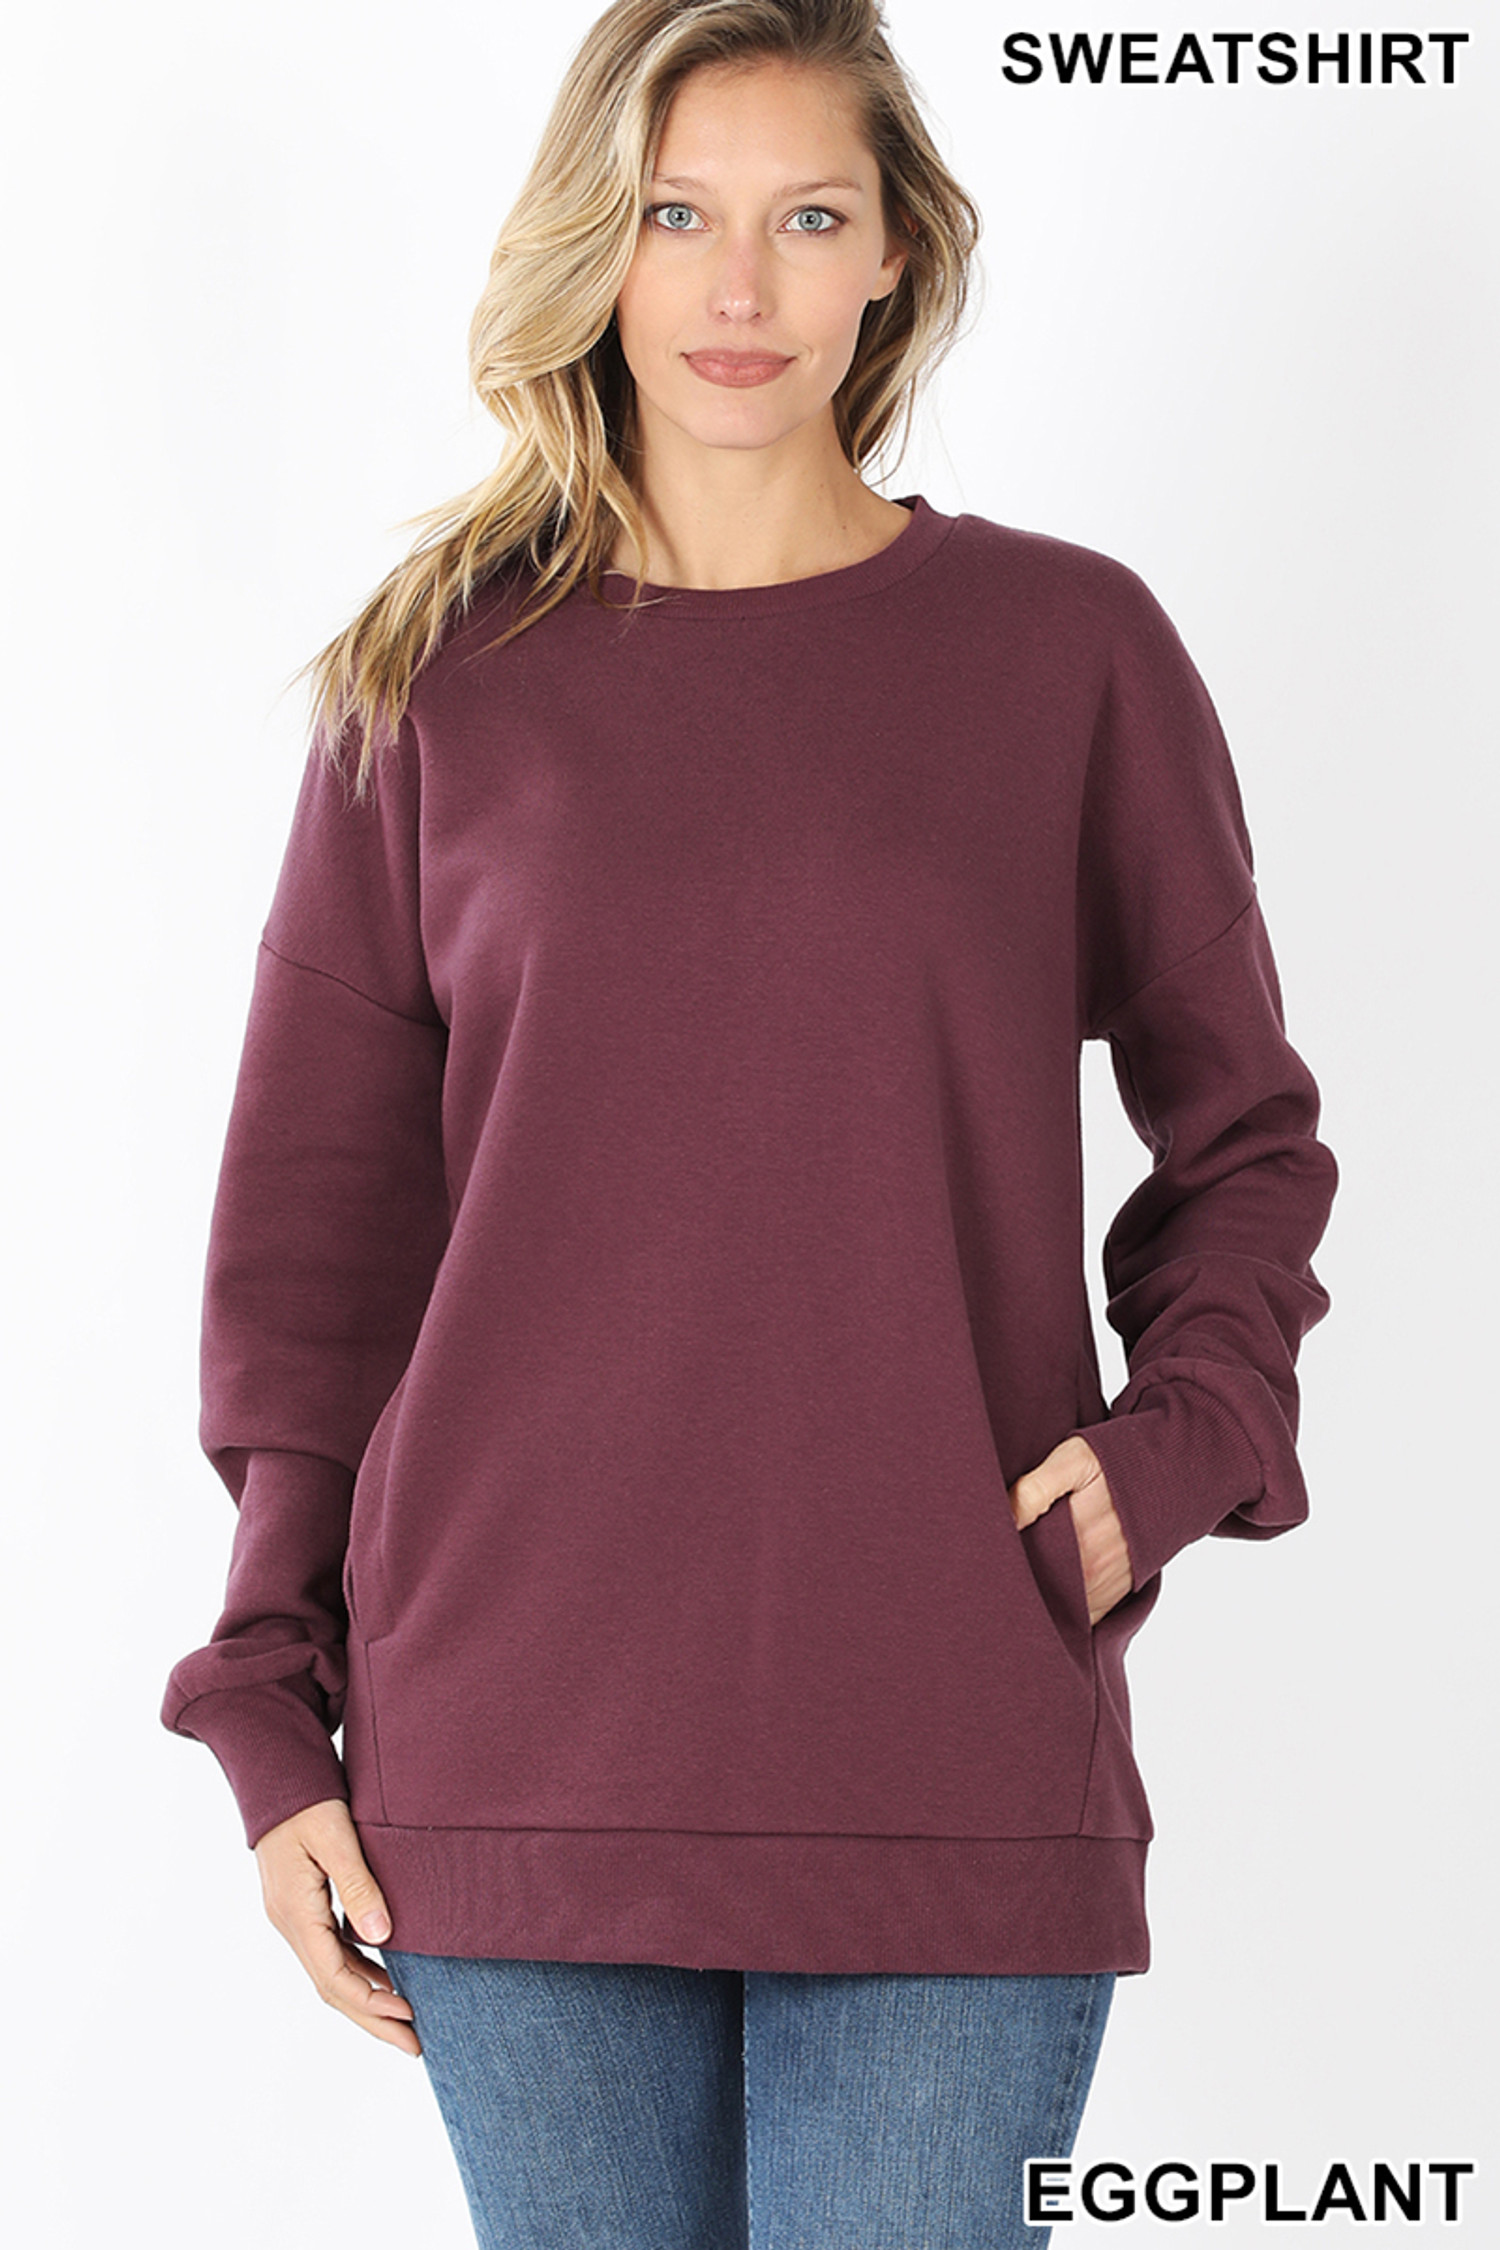 Front image of Eggplant Round Crew Neck Sweatshirt with Side Pockets